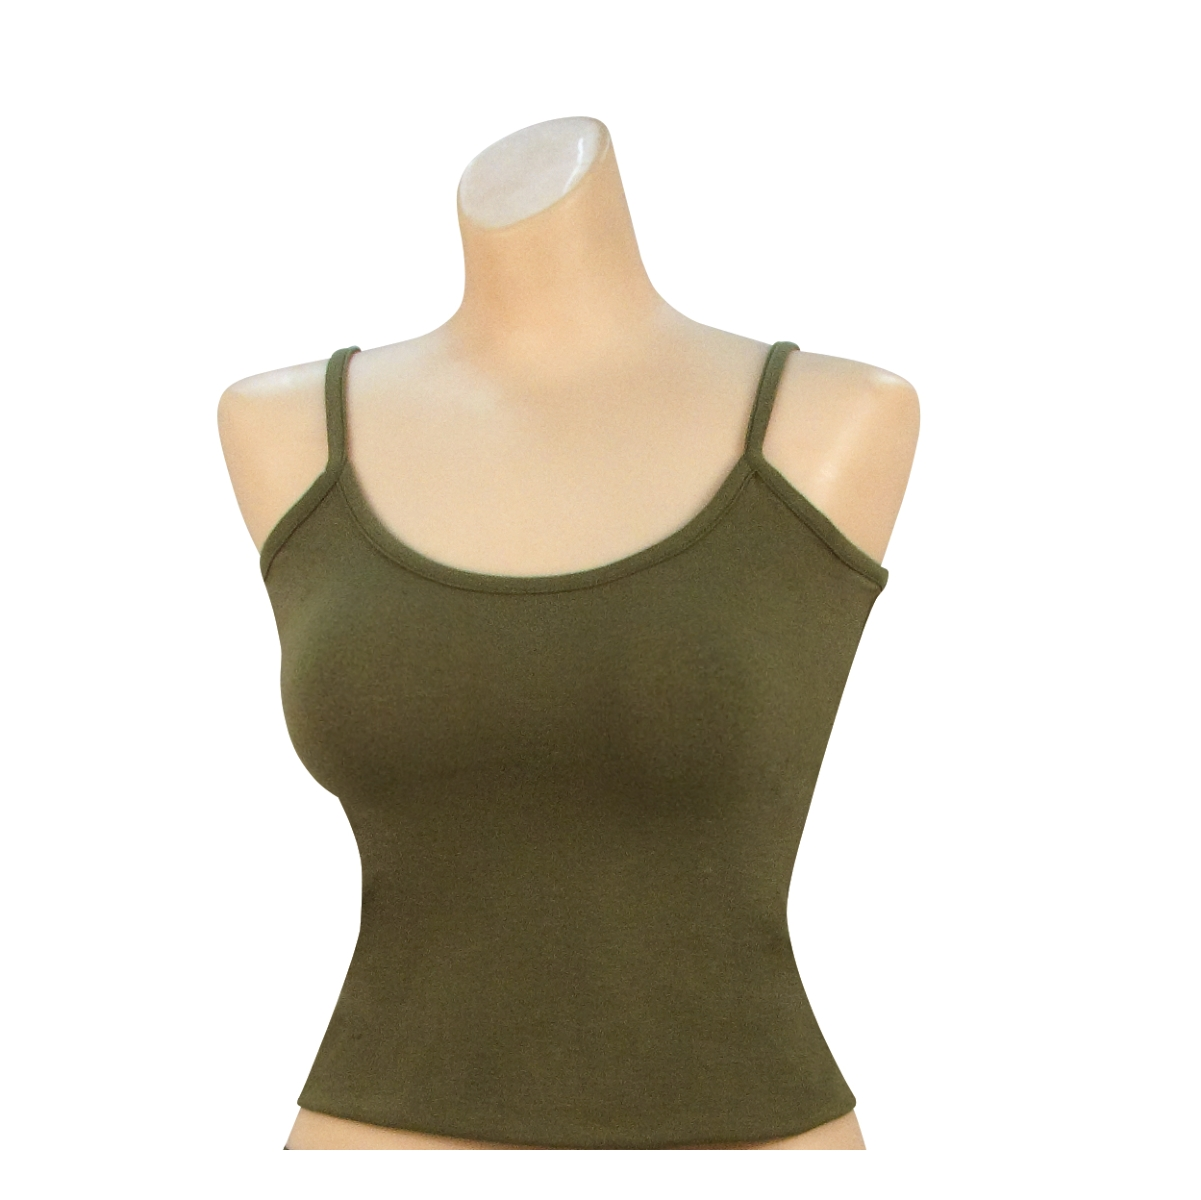 Rothco Women's Olive Drab Casual Tank Top, Camisole